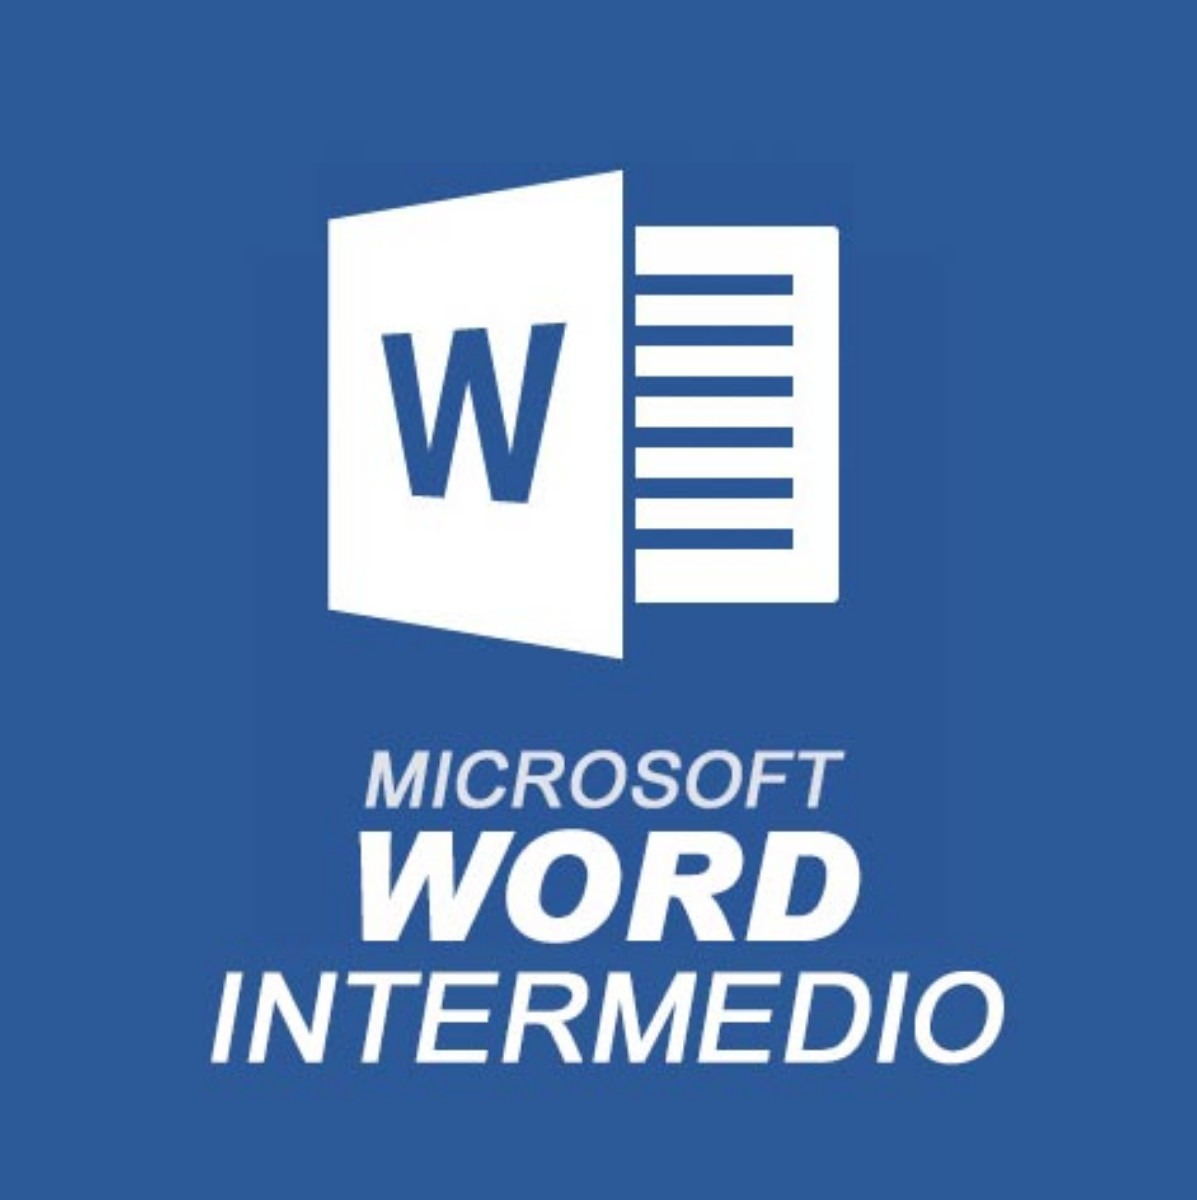 Microsoft Word Intermedio